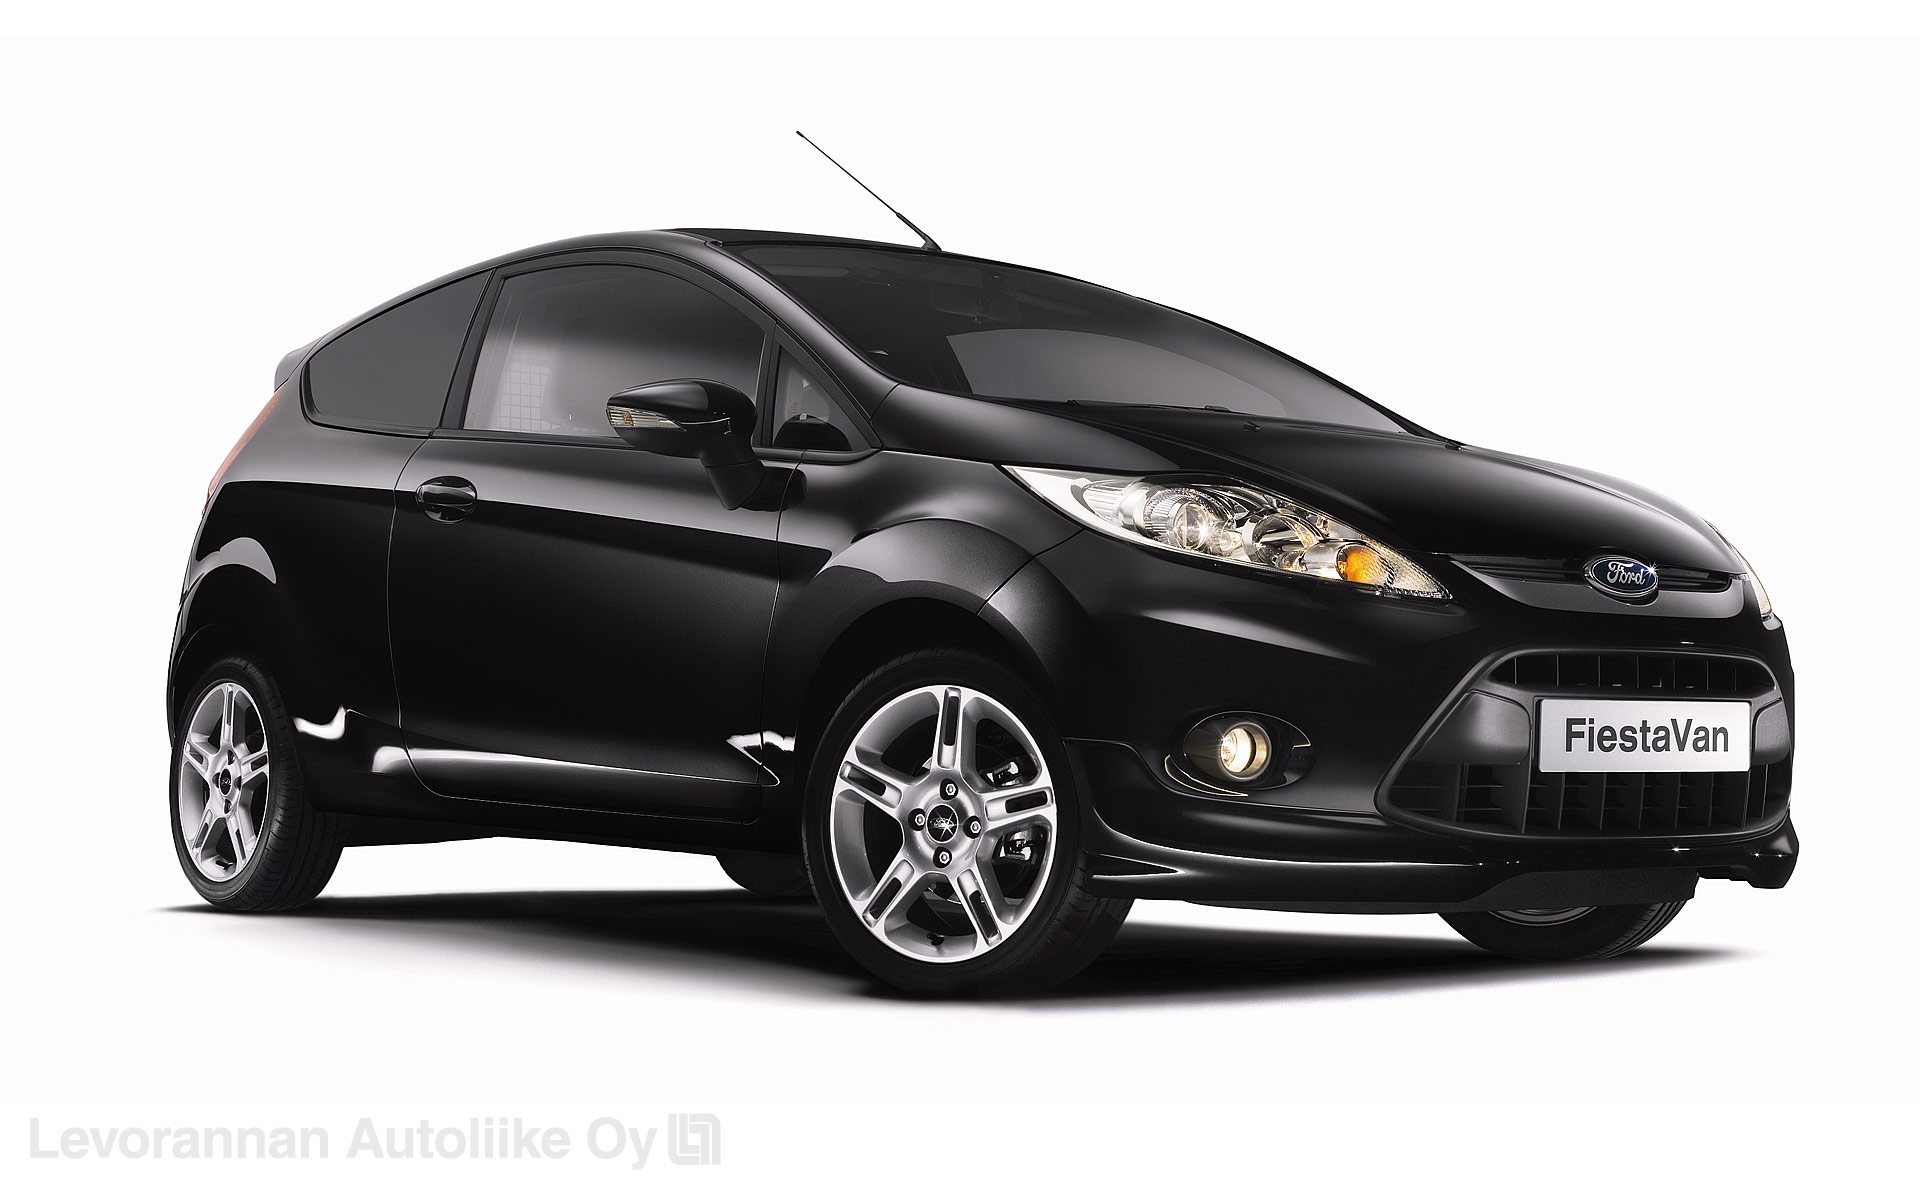 ford fiesta specs of wheel sizes tires pcd offset and rims wheel. Black Bedroom Furniture Sets. Home Design Ideas